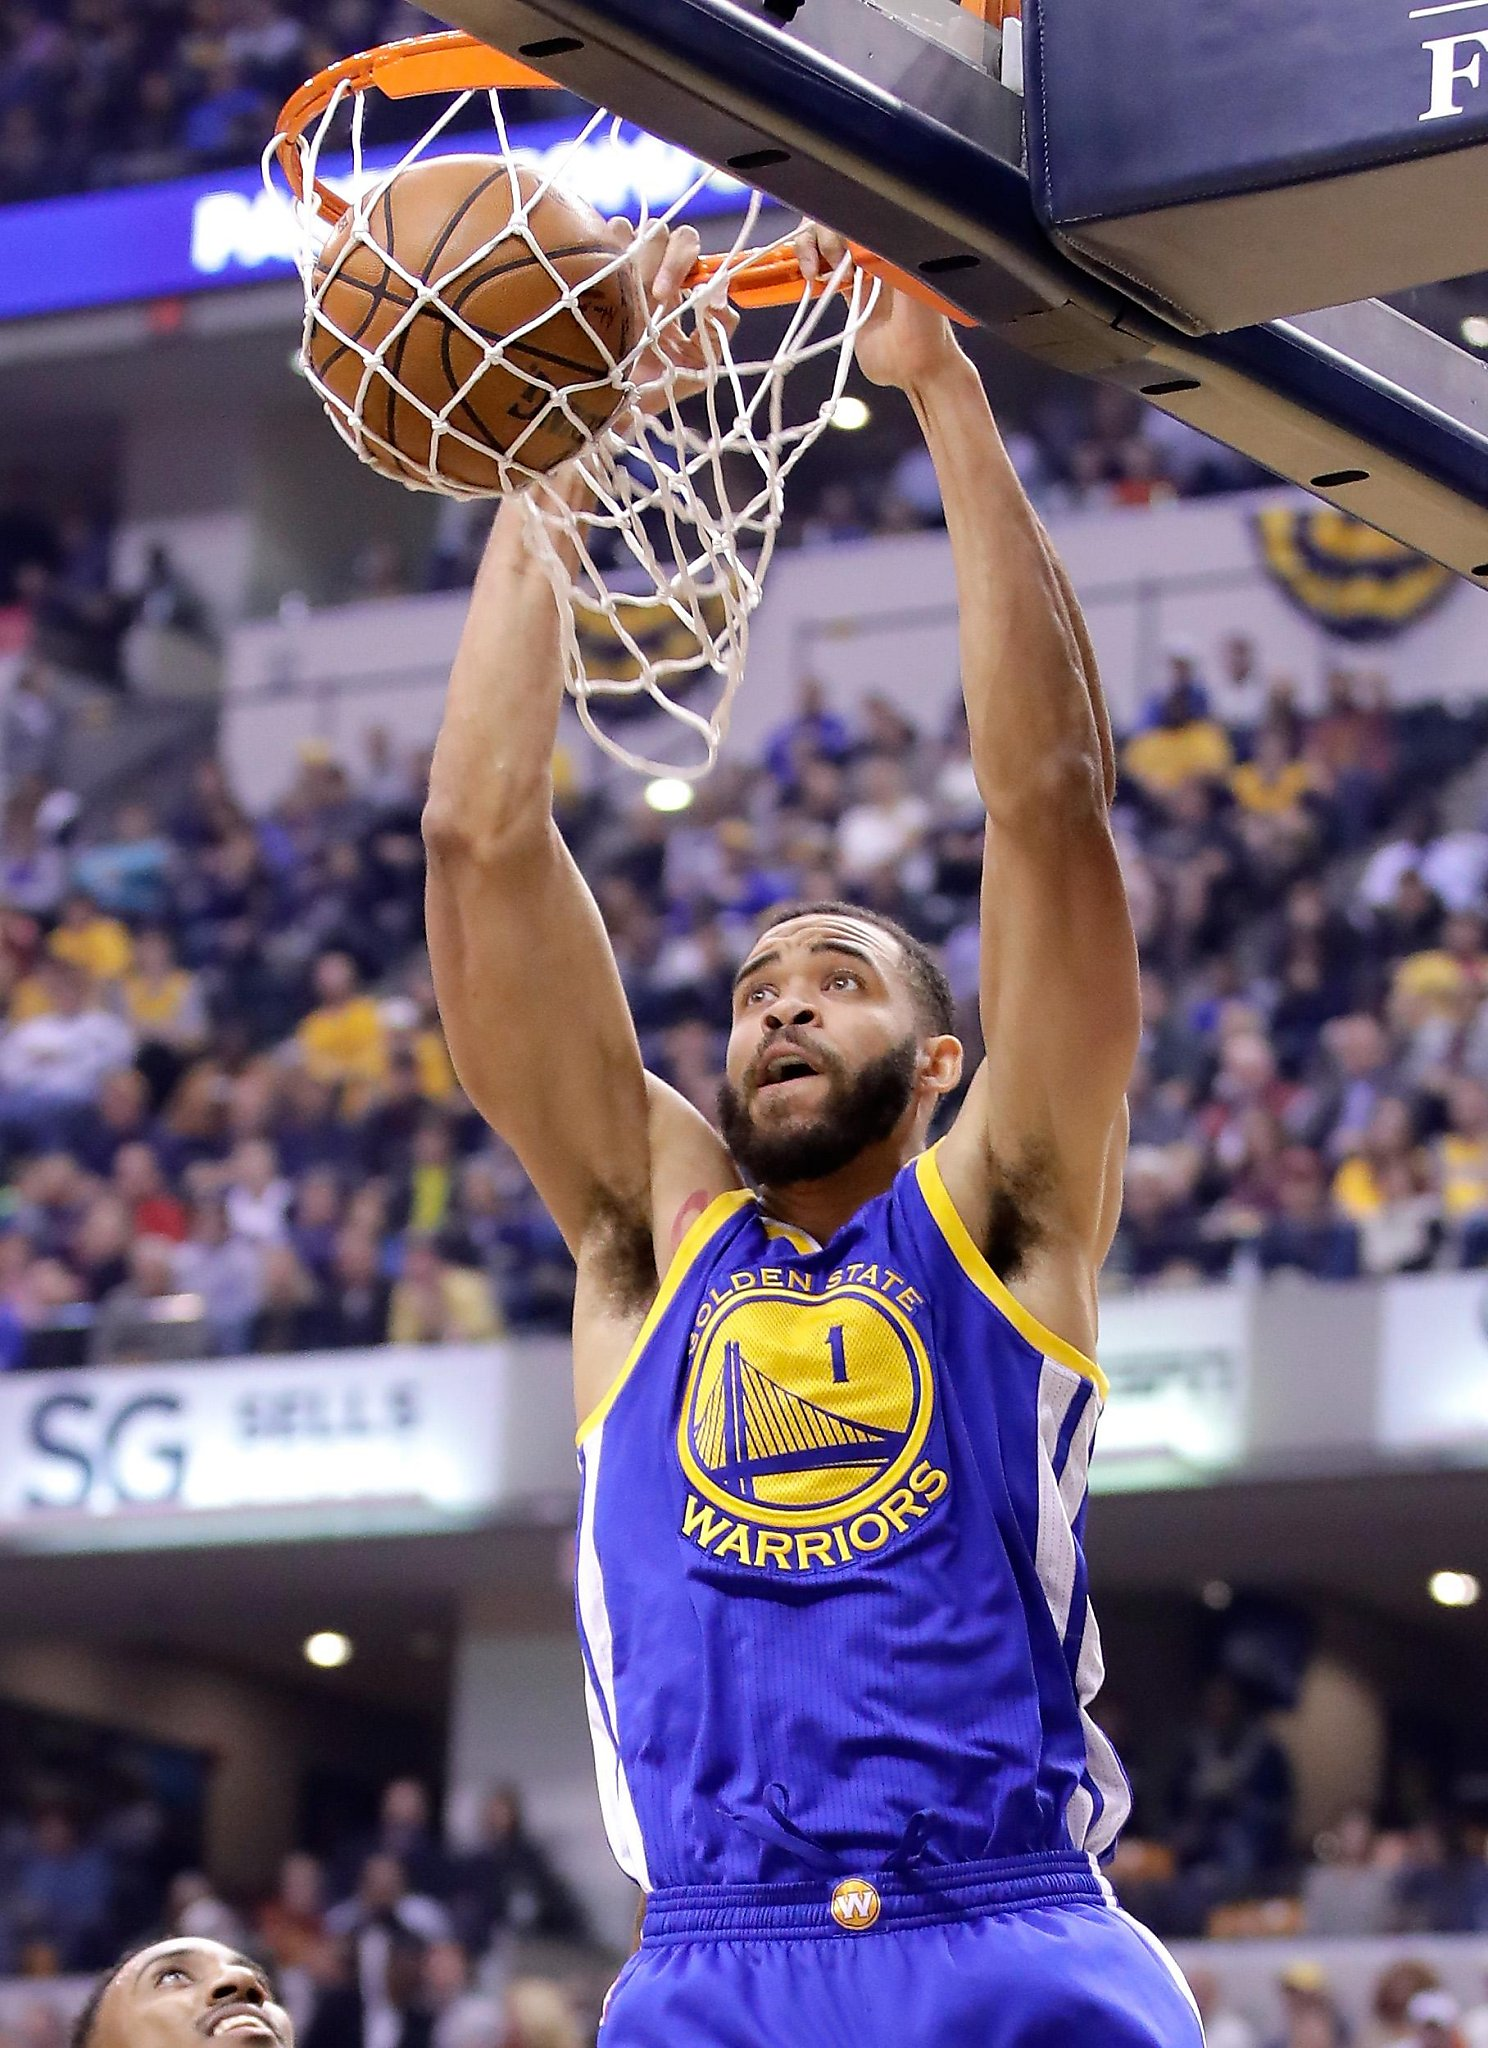 new style 55691 2e674 JaVale McGee impresses in first start with Warriors - SFGate